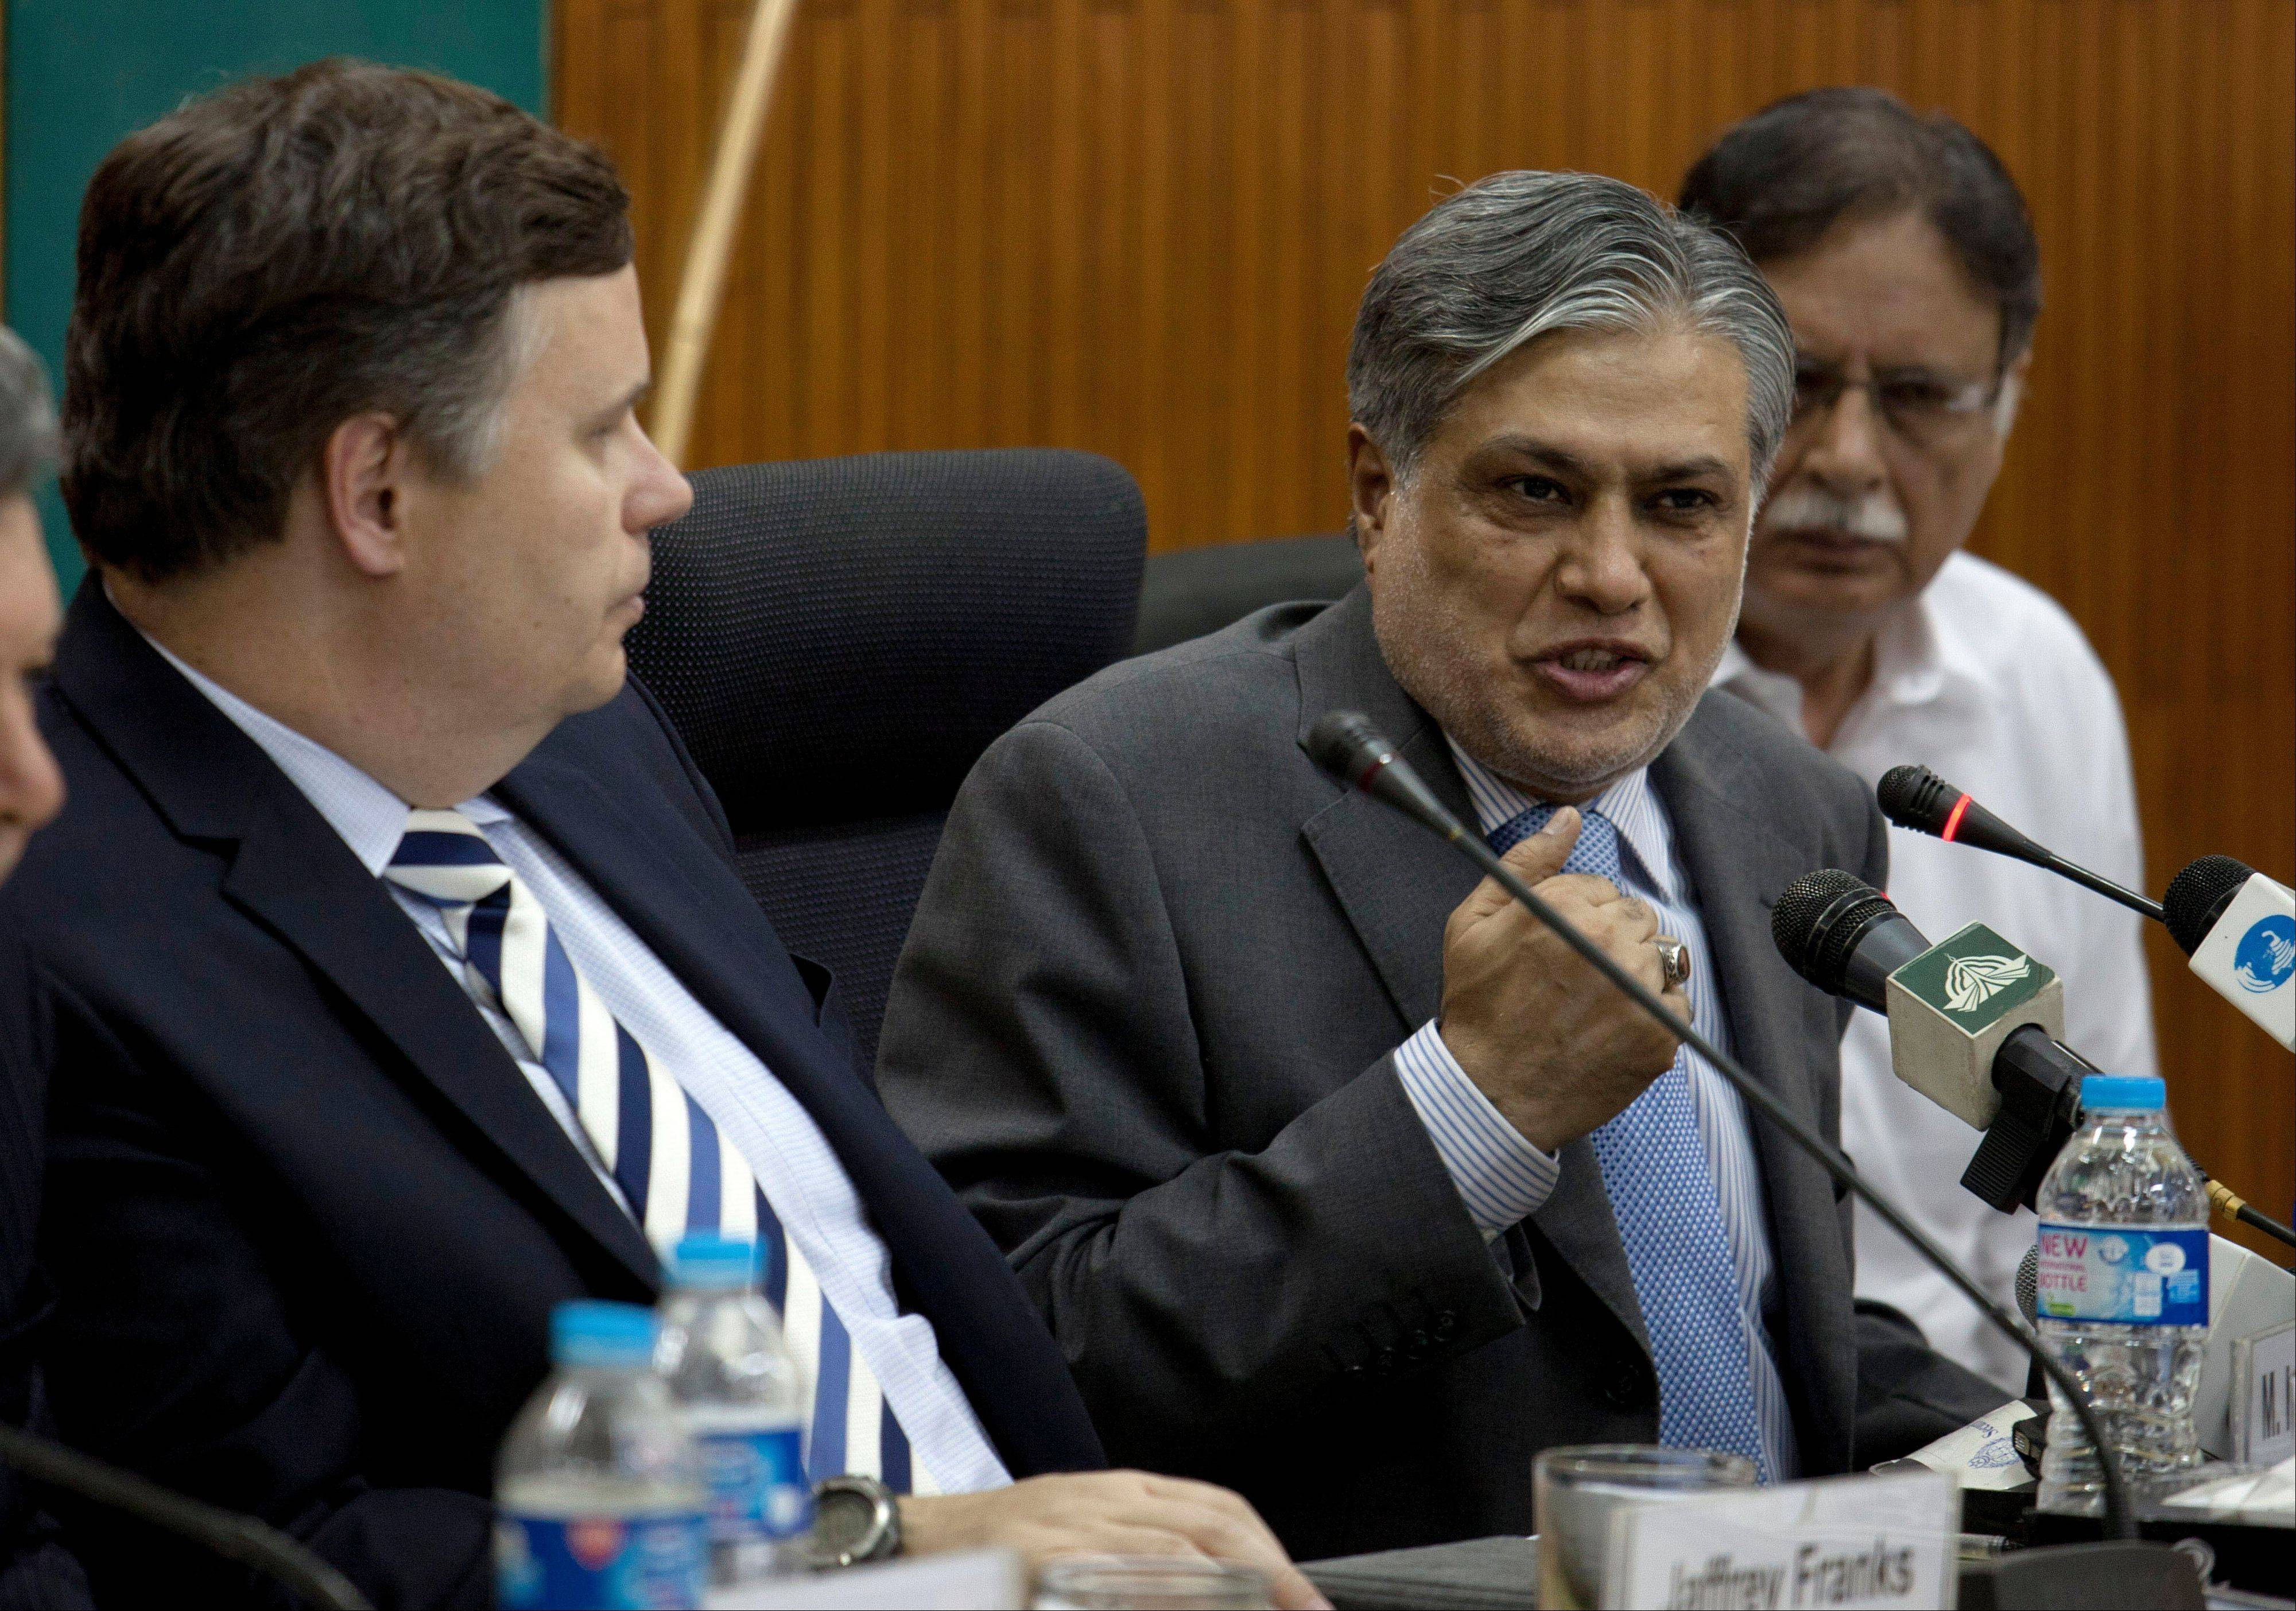 Pakistani Finance Minister Muhammad Ishaq Dar, center addresses a news conference with IMF mission chief Jeffrey Franks, left, at the finance ministry in Islamabad, Pakistan on Thursday. Pakistan and the International Monetary Fund have reached an initial agreement on a bailout of at least $5.3 billion to stave off an economic crisis as the country�s foreign reserves dip perilously low, officials said Thursday.